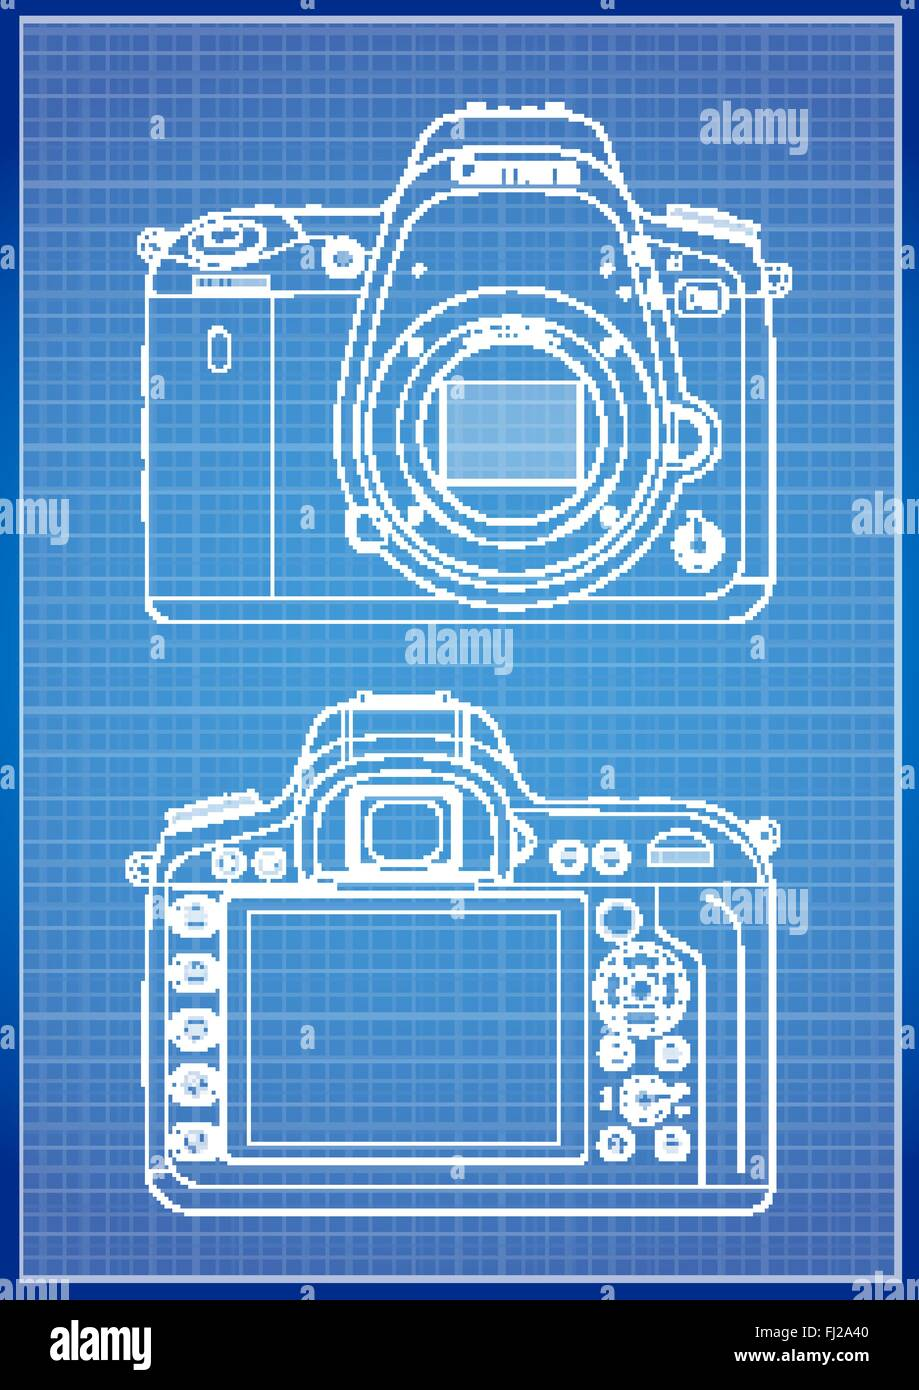 DSLR Camera Outline - Stock Vector